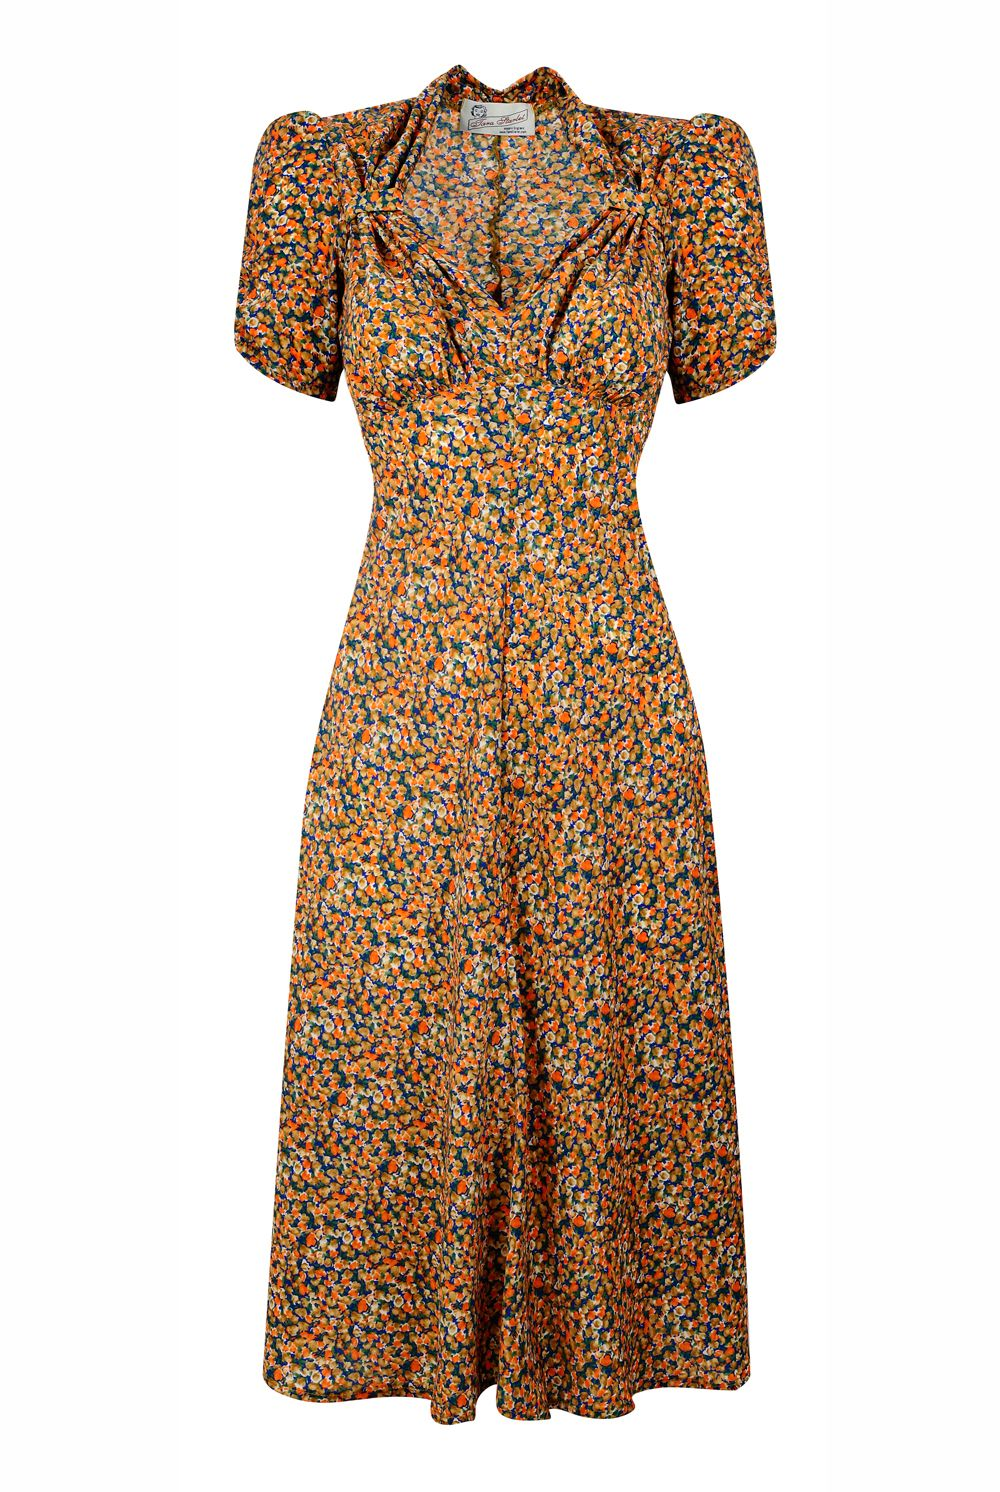 Tara Starlet 1940s 40s Style: Floral Sweetheart Dress So Many Prints To